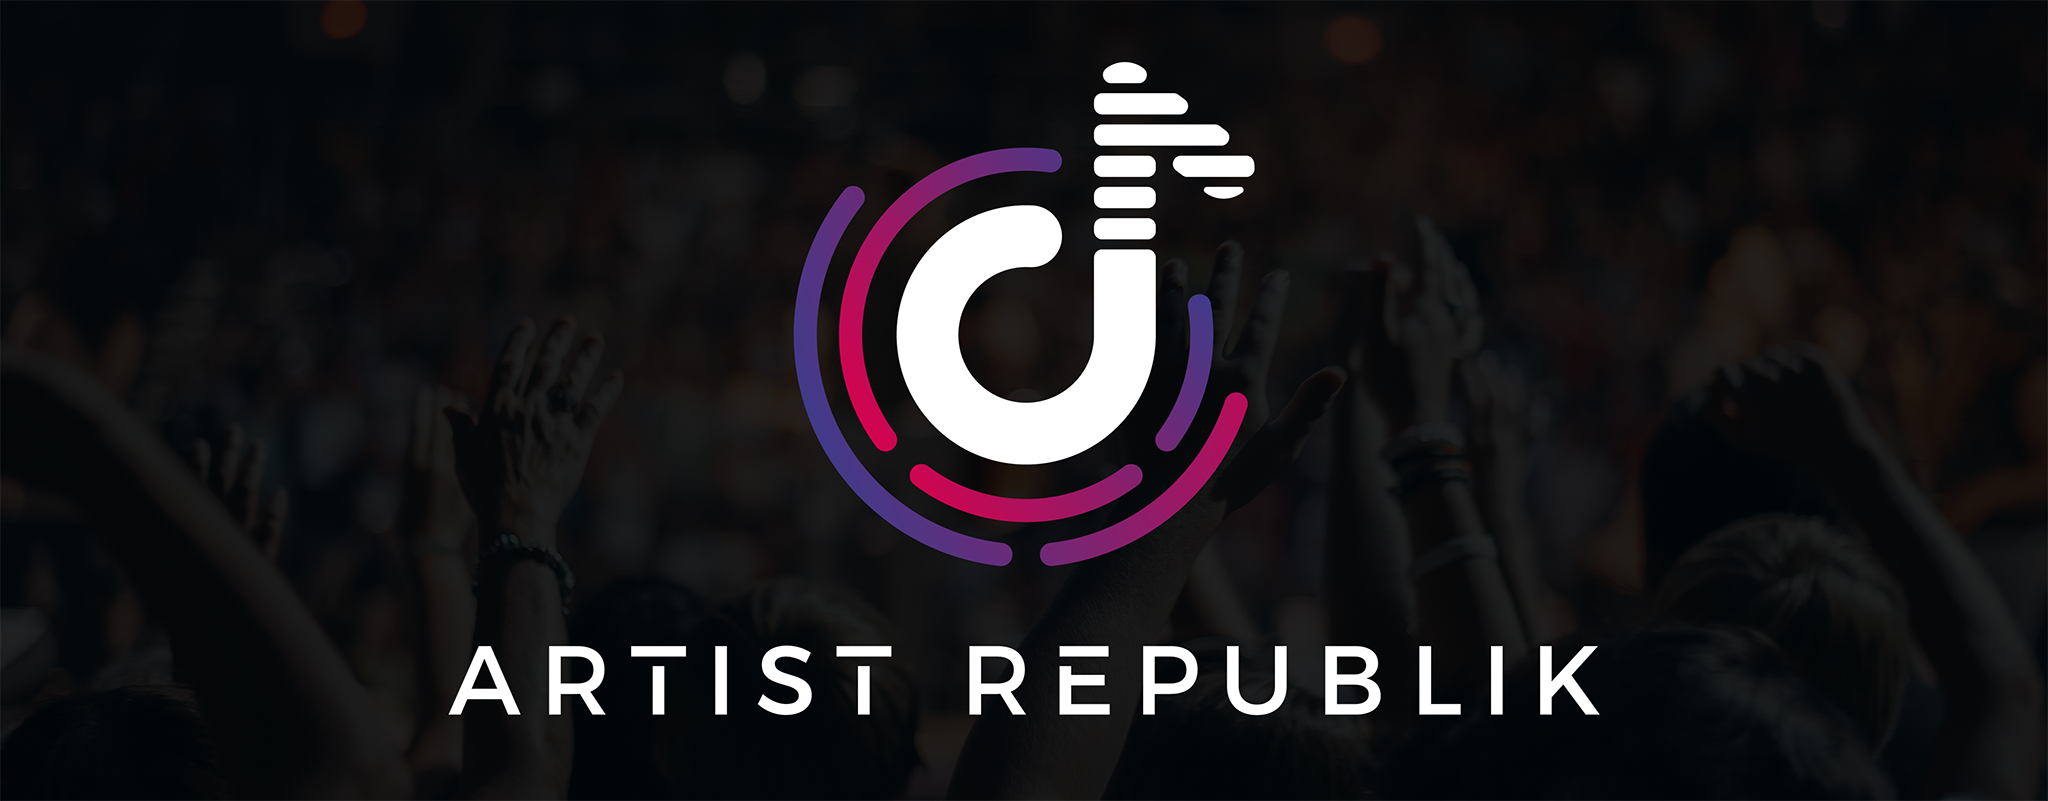 Artist Republik Is a Home for Independent Artists